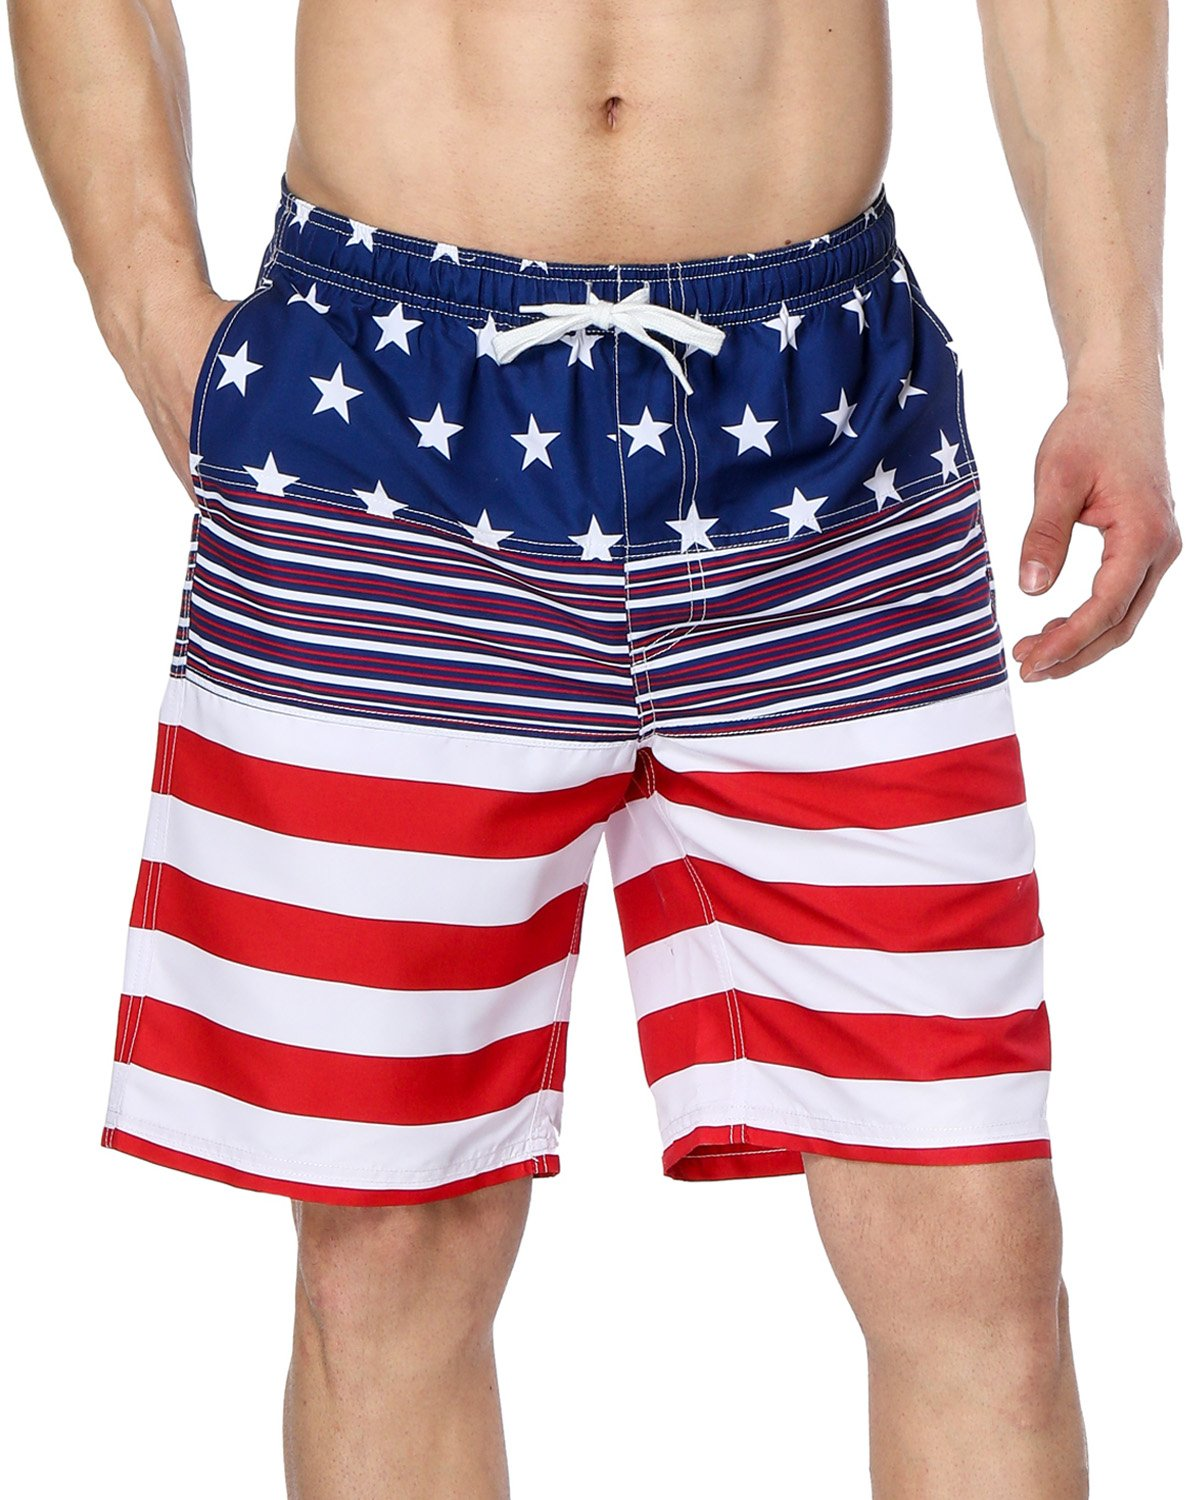 FullBo Colorado Flag Pattern Little Boys Short Swim Trunks Quick Dry Beach Shorts